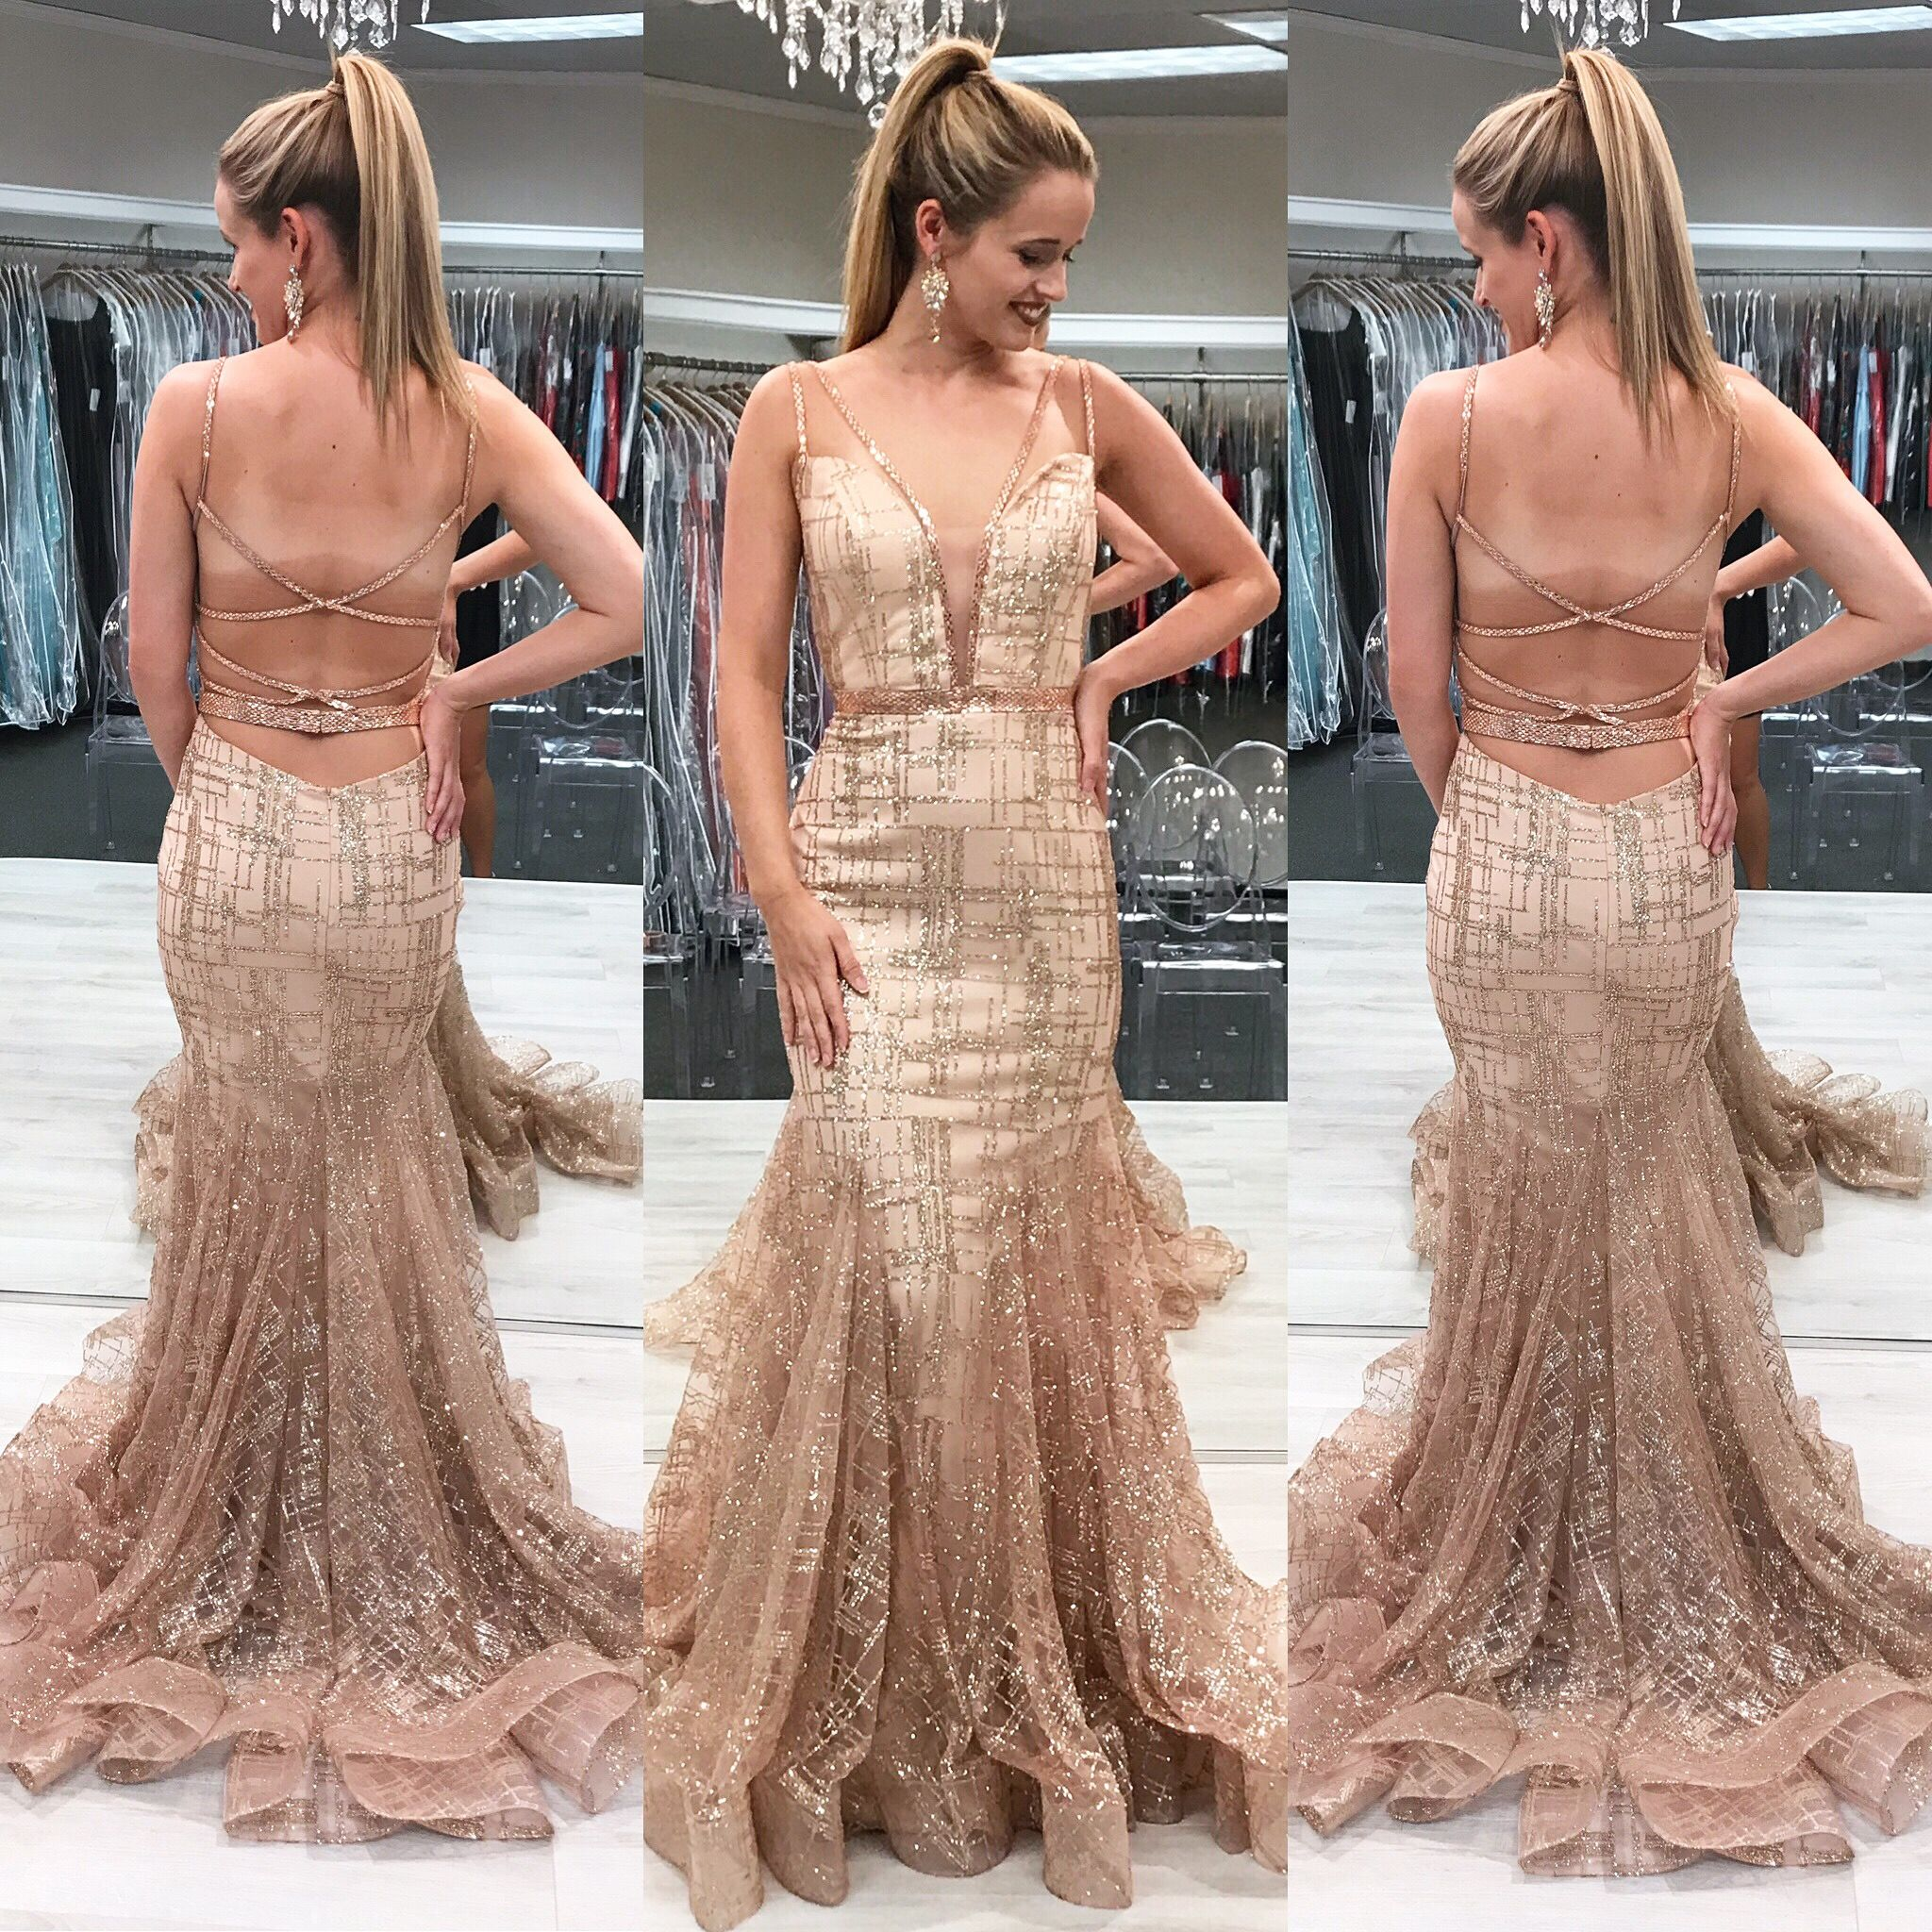 62 best All things Sparkly (Prom) images on Pinterest